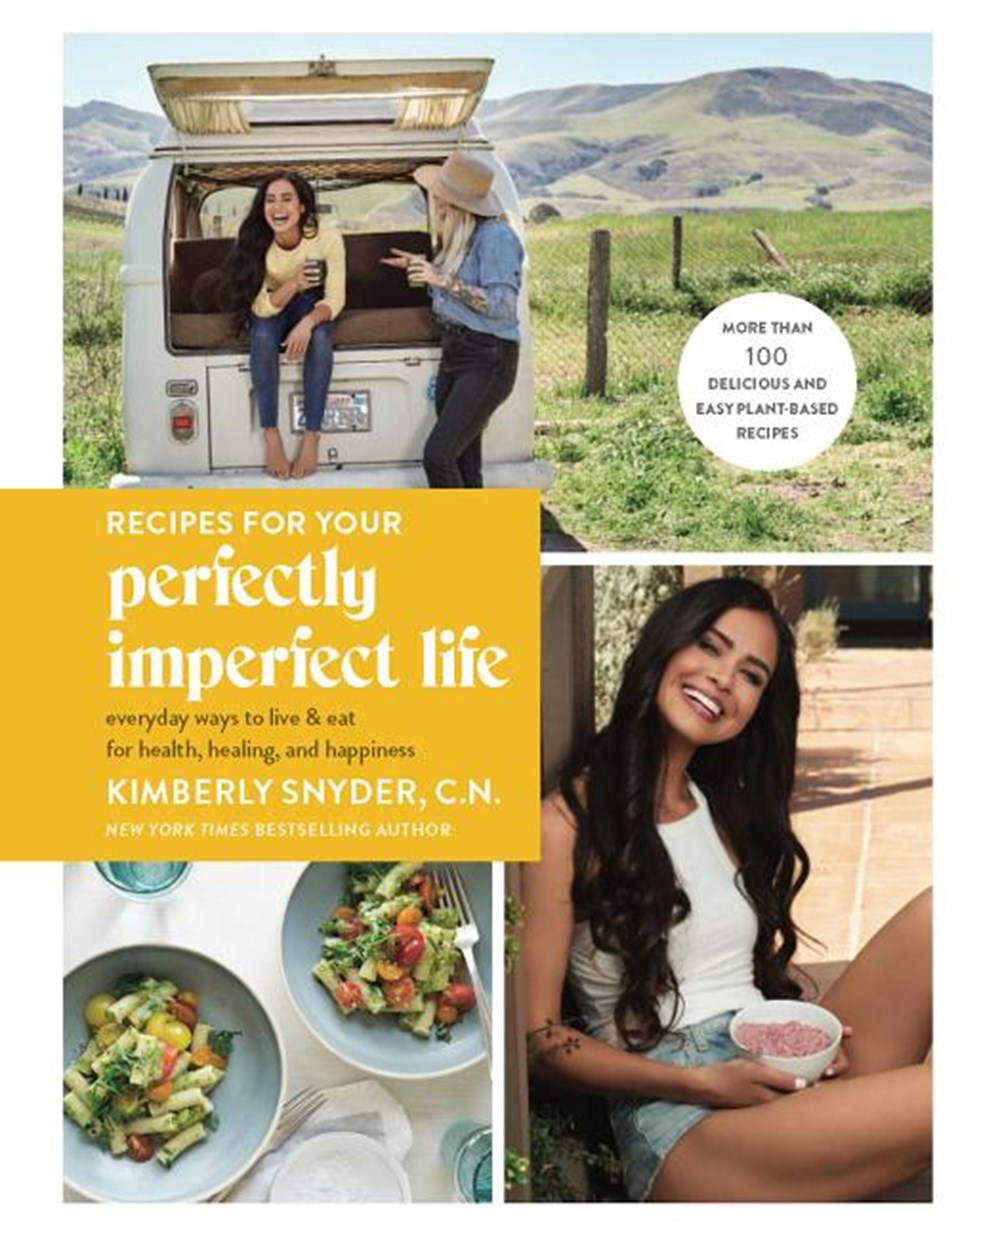 Recipes for Your Perfectly Imperfect Life Everyday Ways to Live and Eat for Health, Healing, and Hap